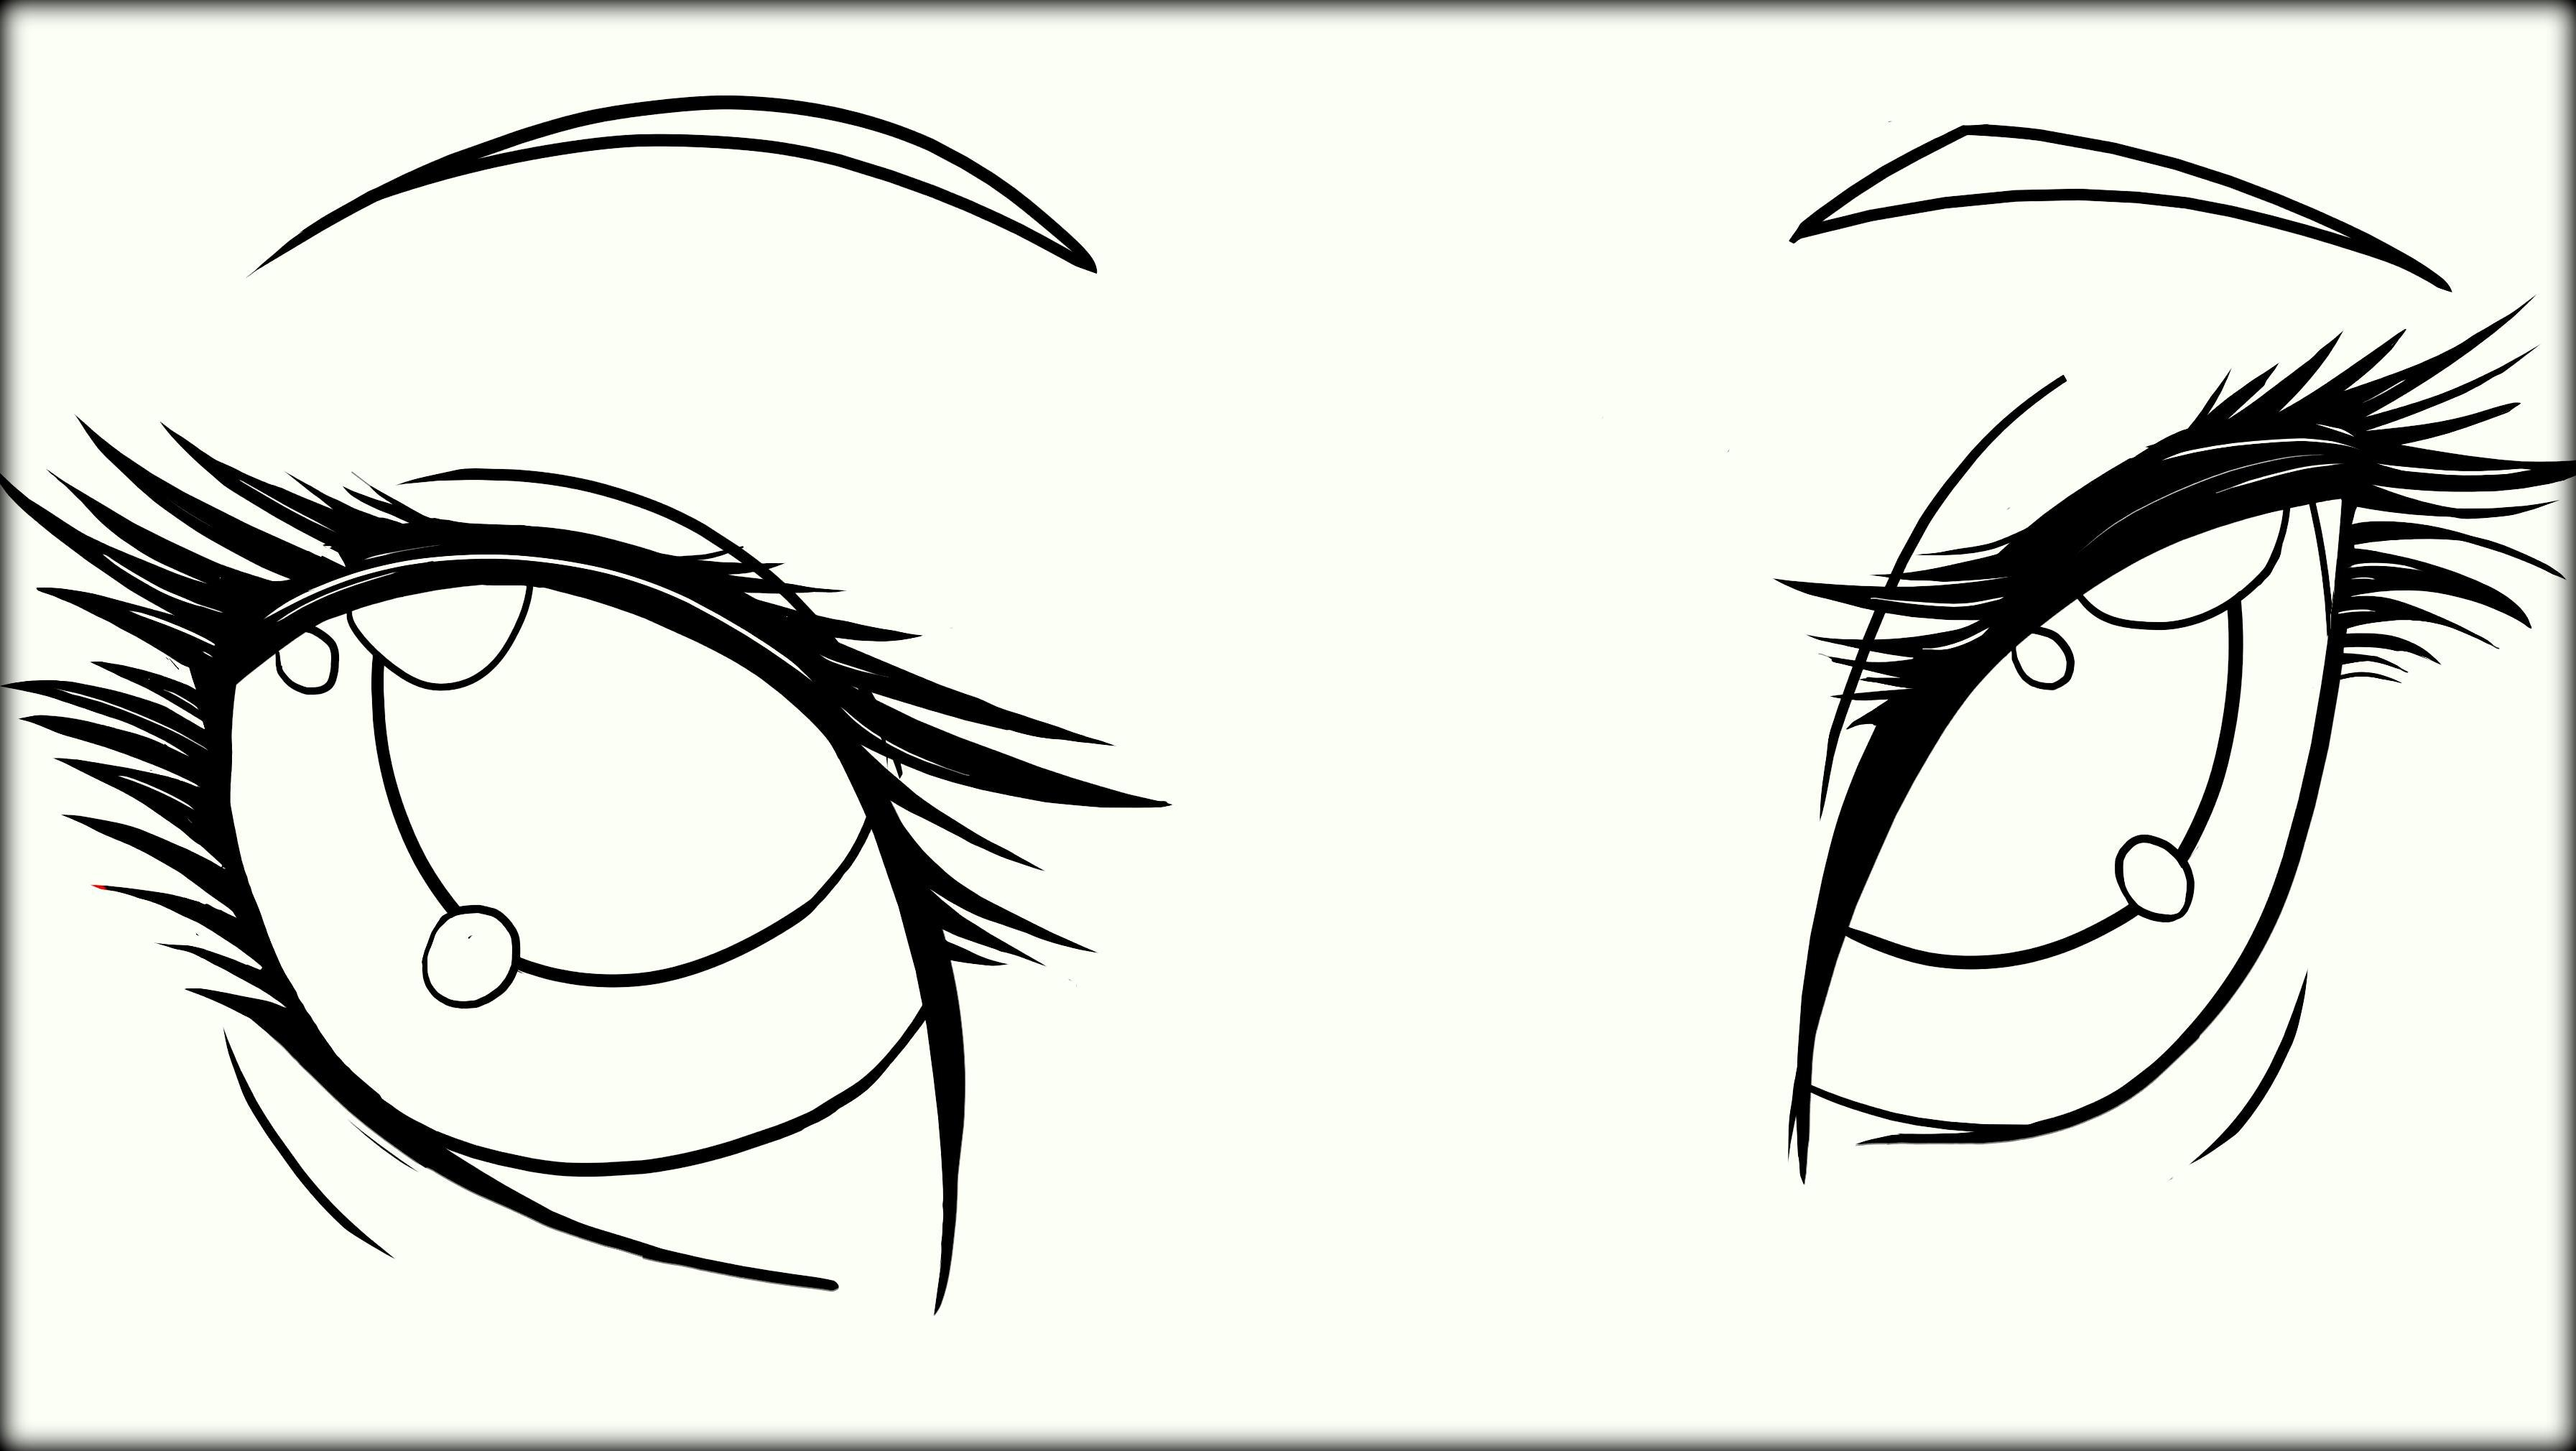 eye coloring page - eye coloring page eye coloring page futpal coloring pages disney